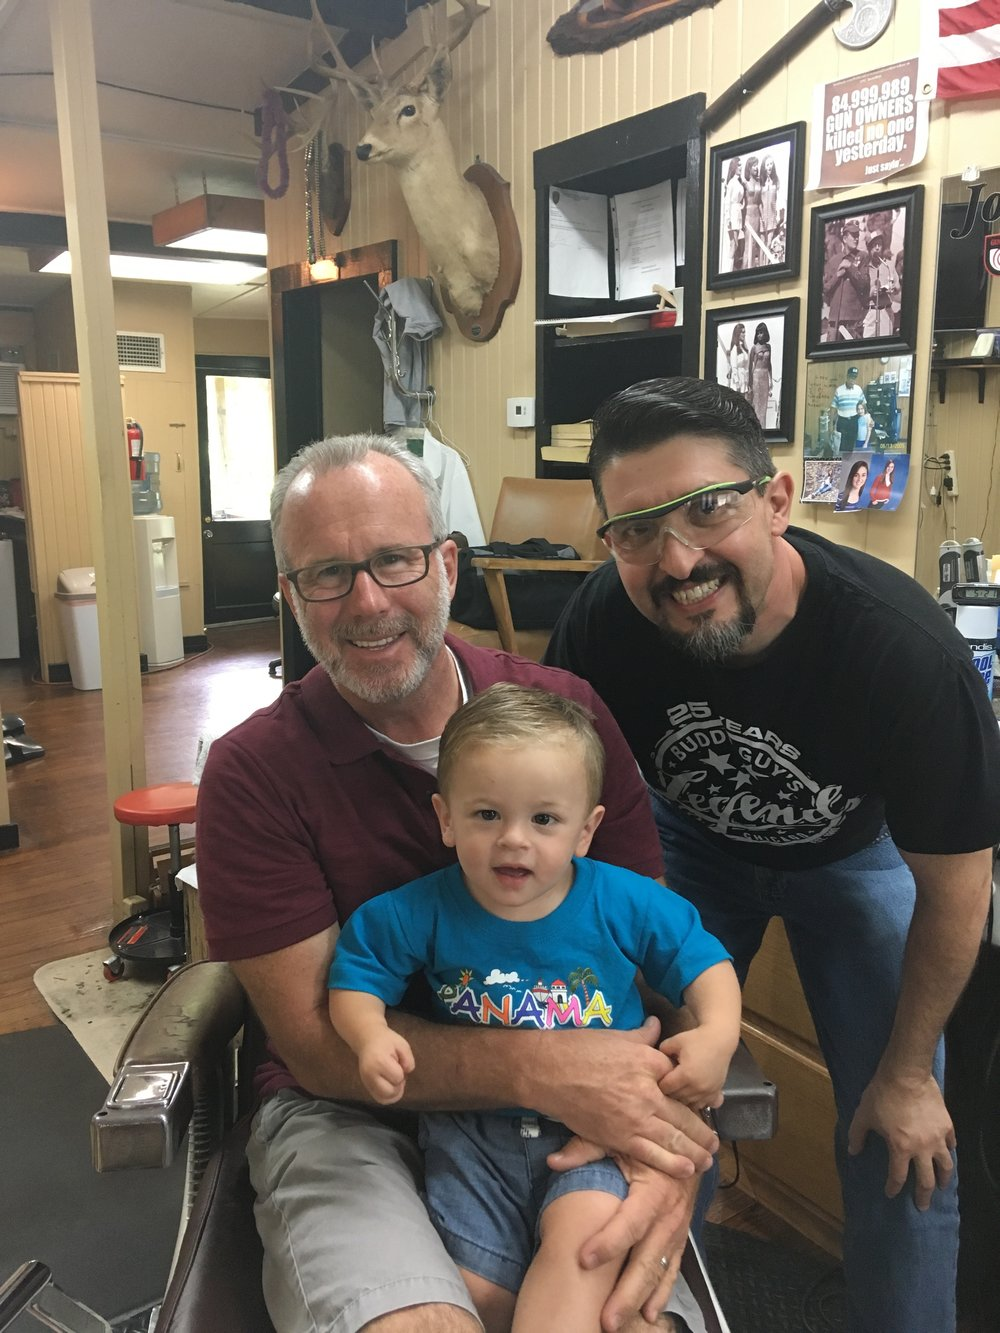 Getting a haircut with my grandson